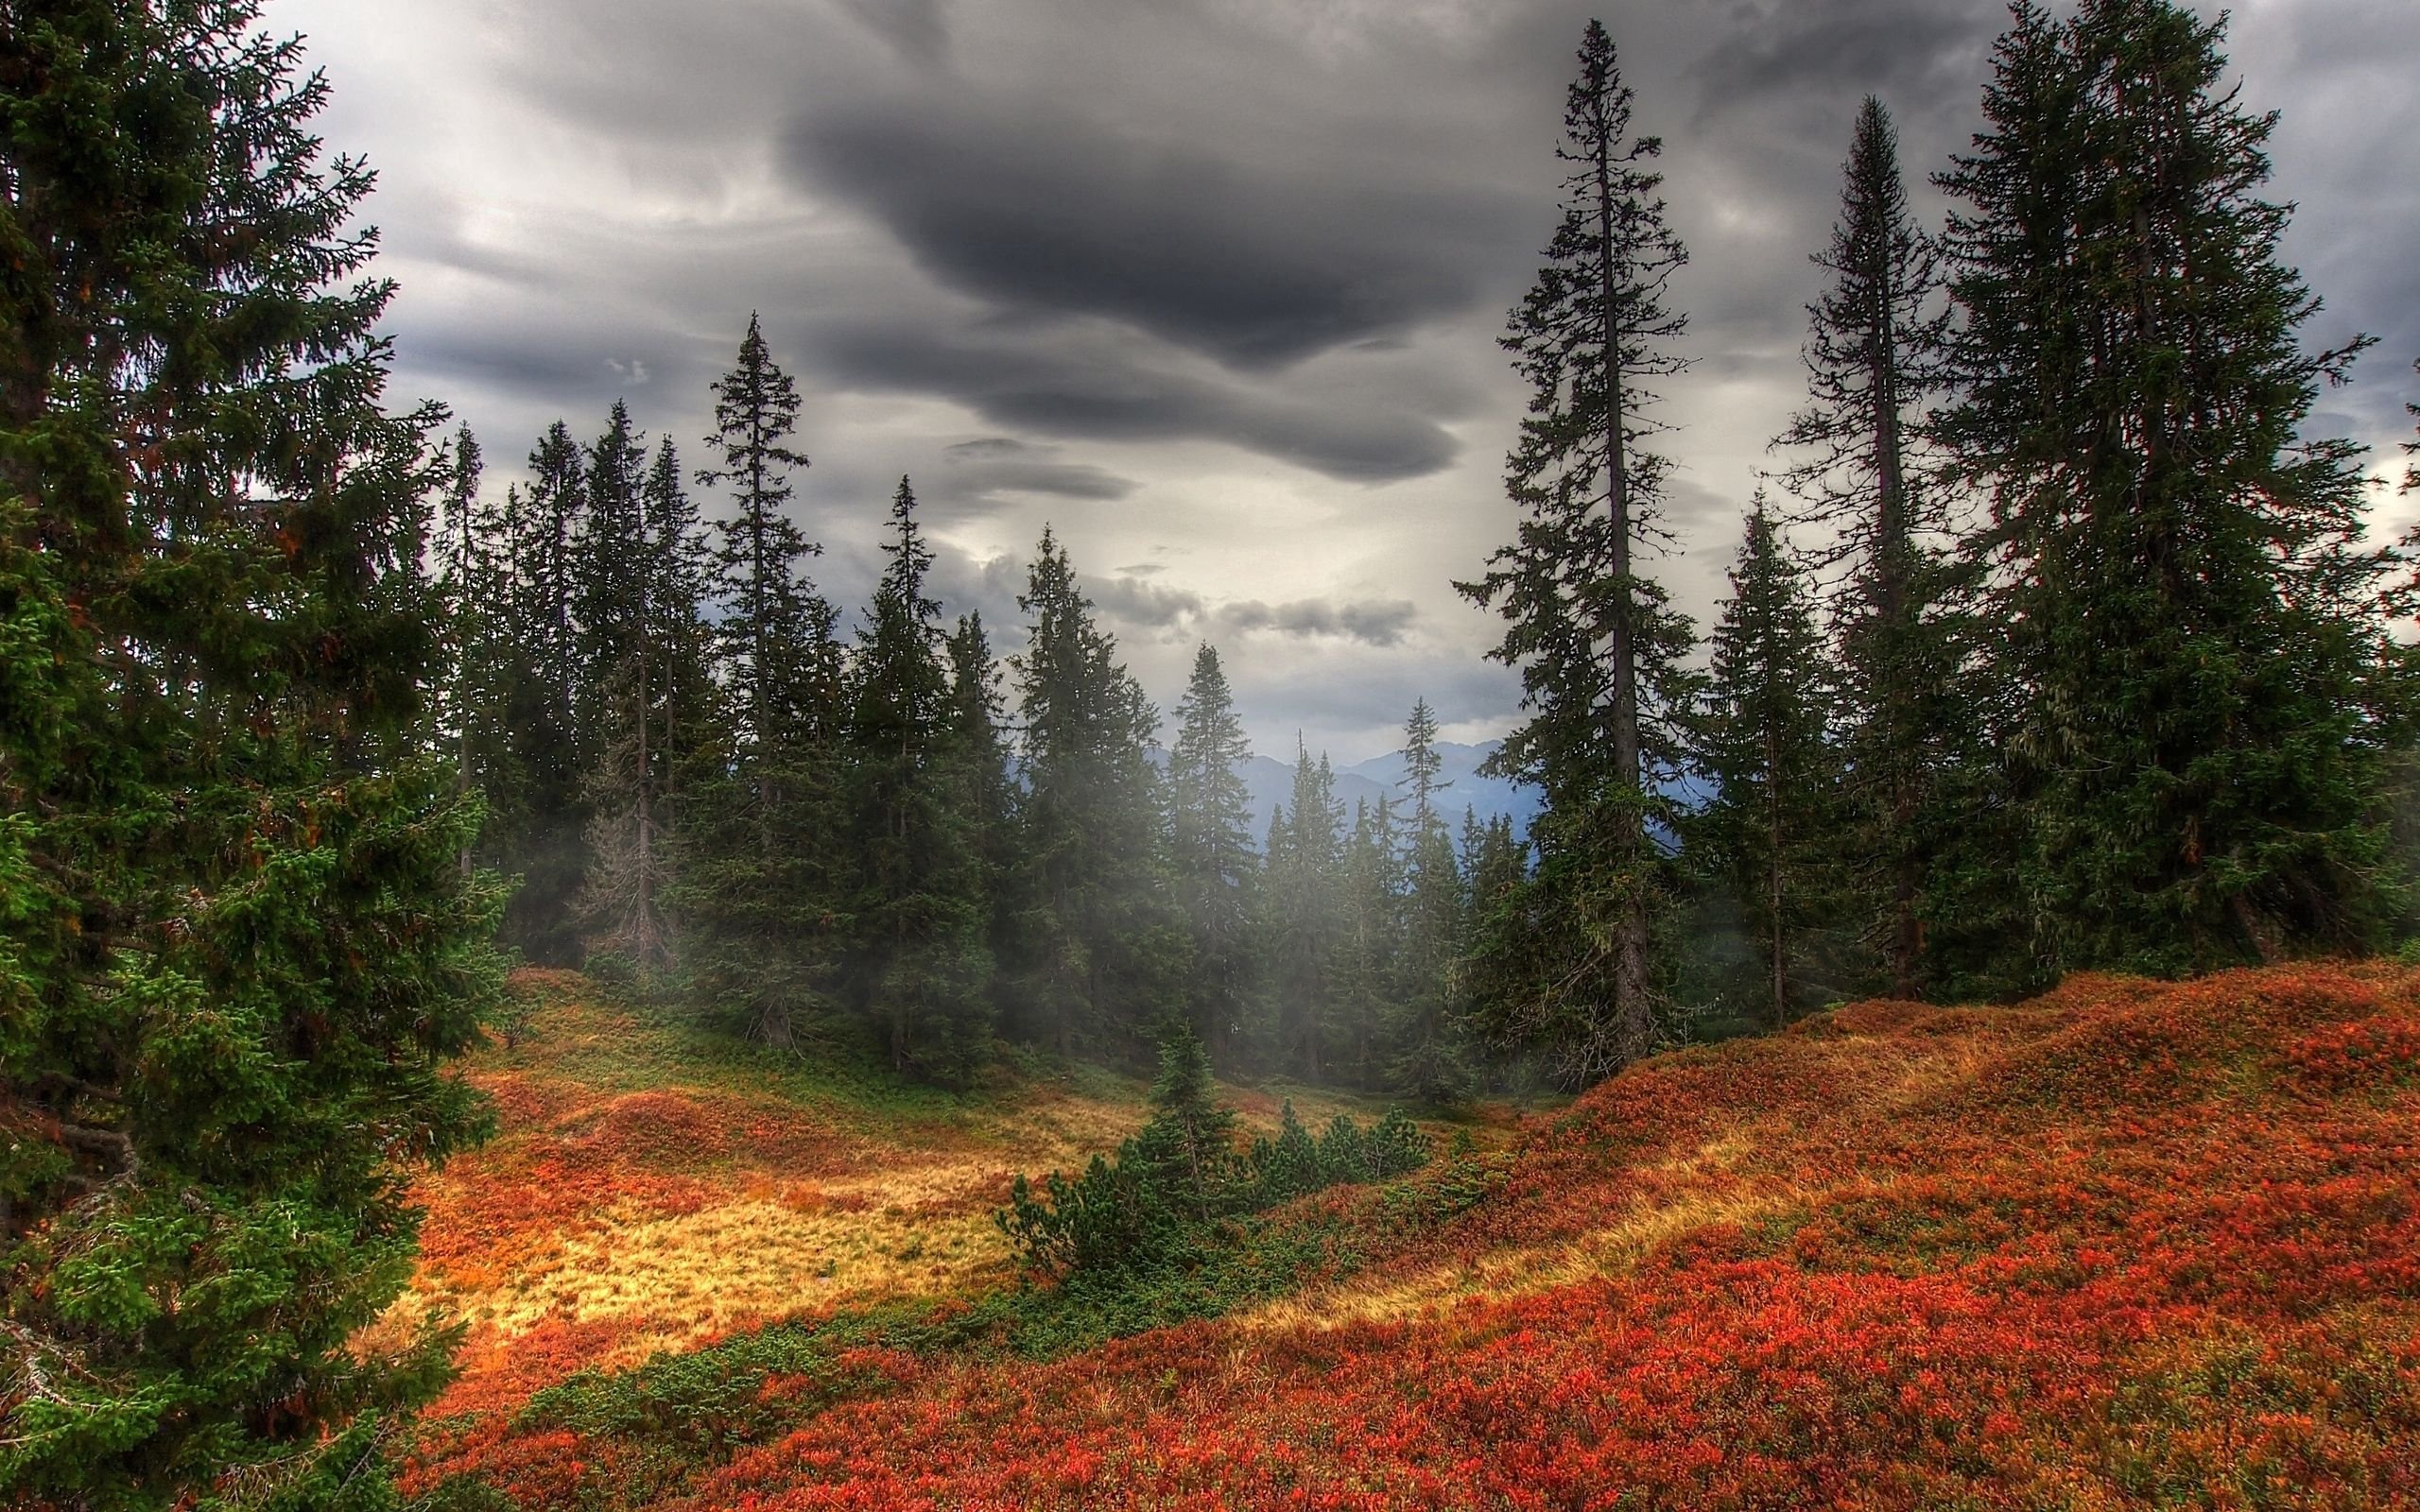 63946 download wallpaper Nature, Autumn, Fog, Trees, Forest screensavers and pictures for free